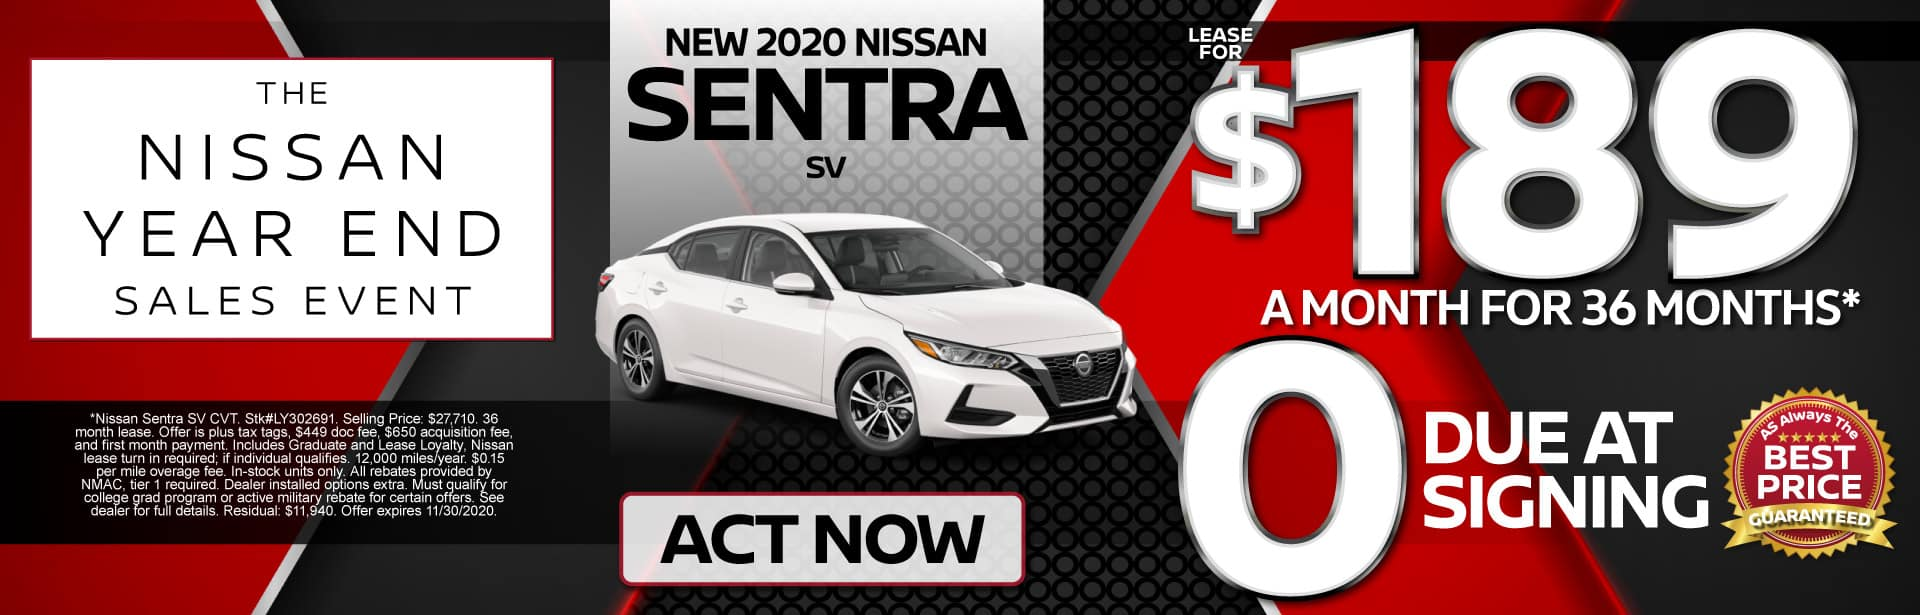 New 2020 Sentra Lease for $189 a month for 36 months | Act Now